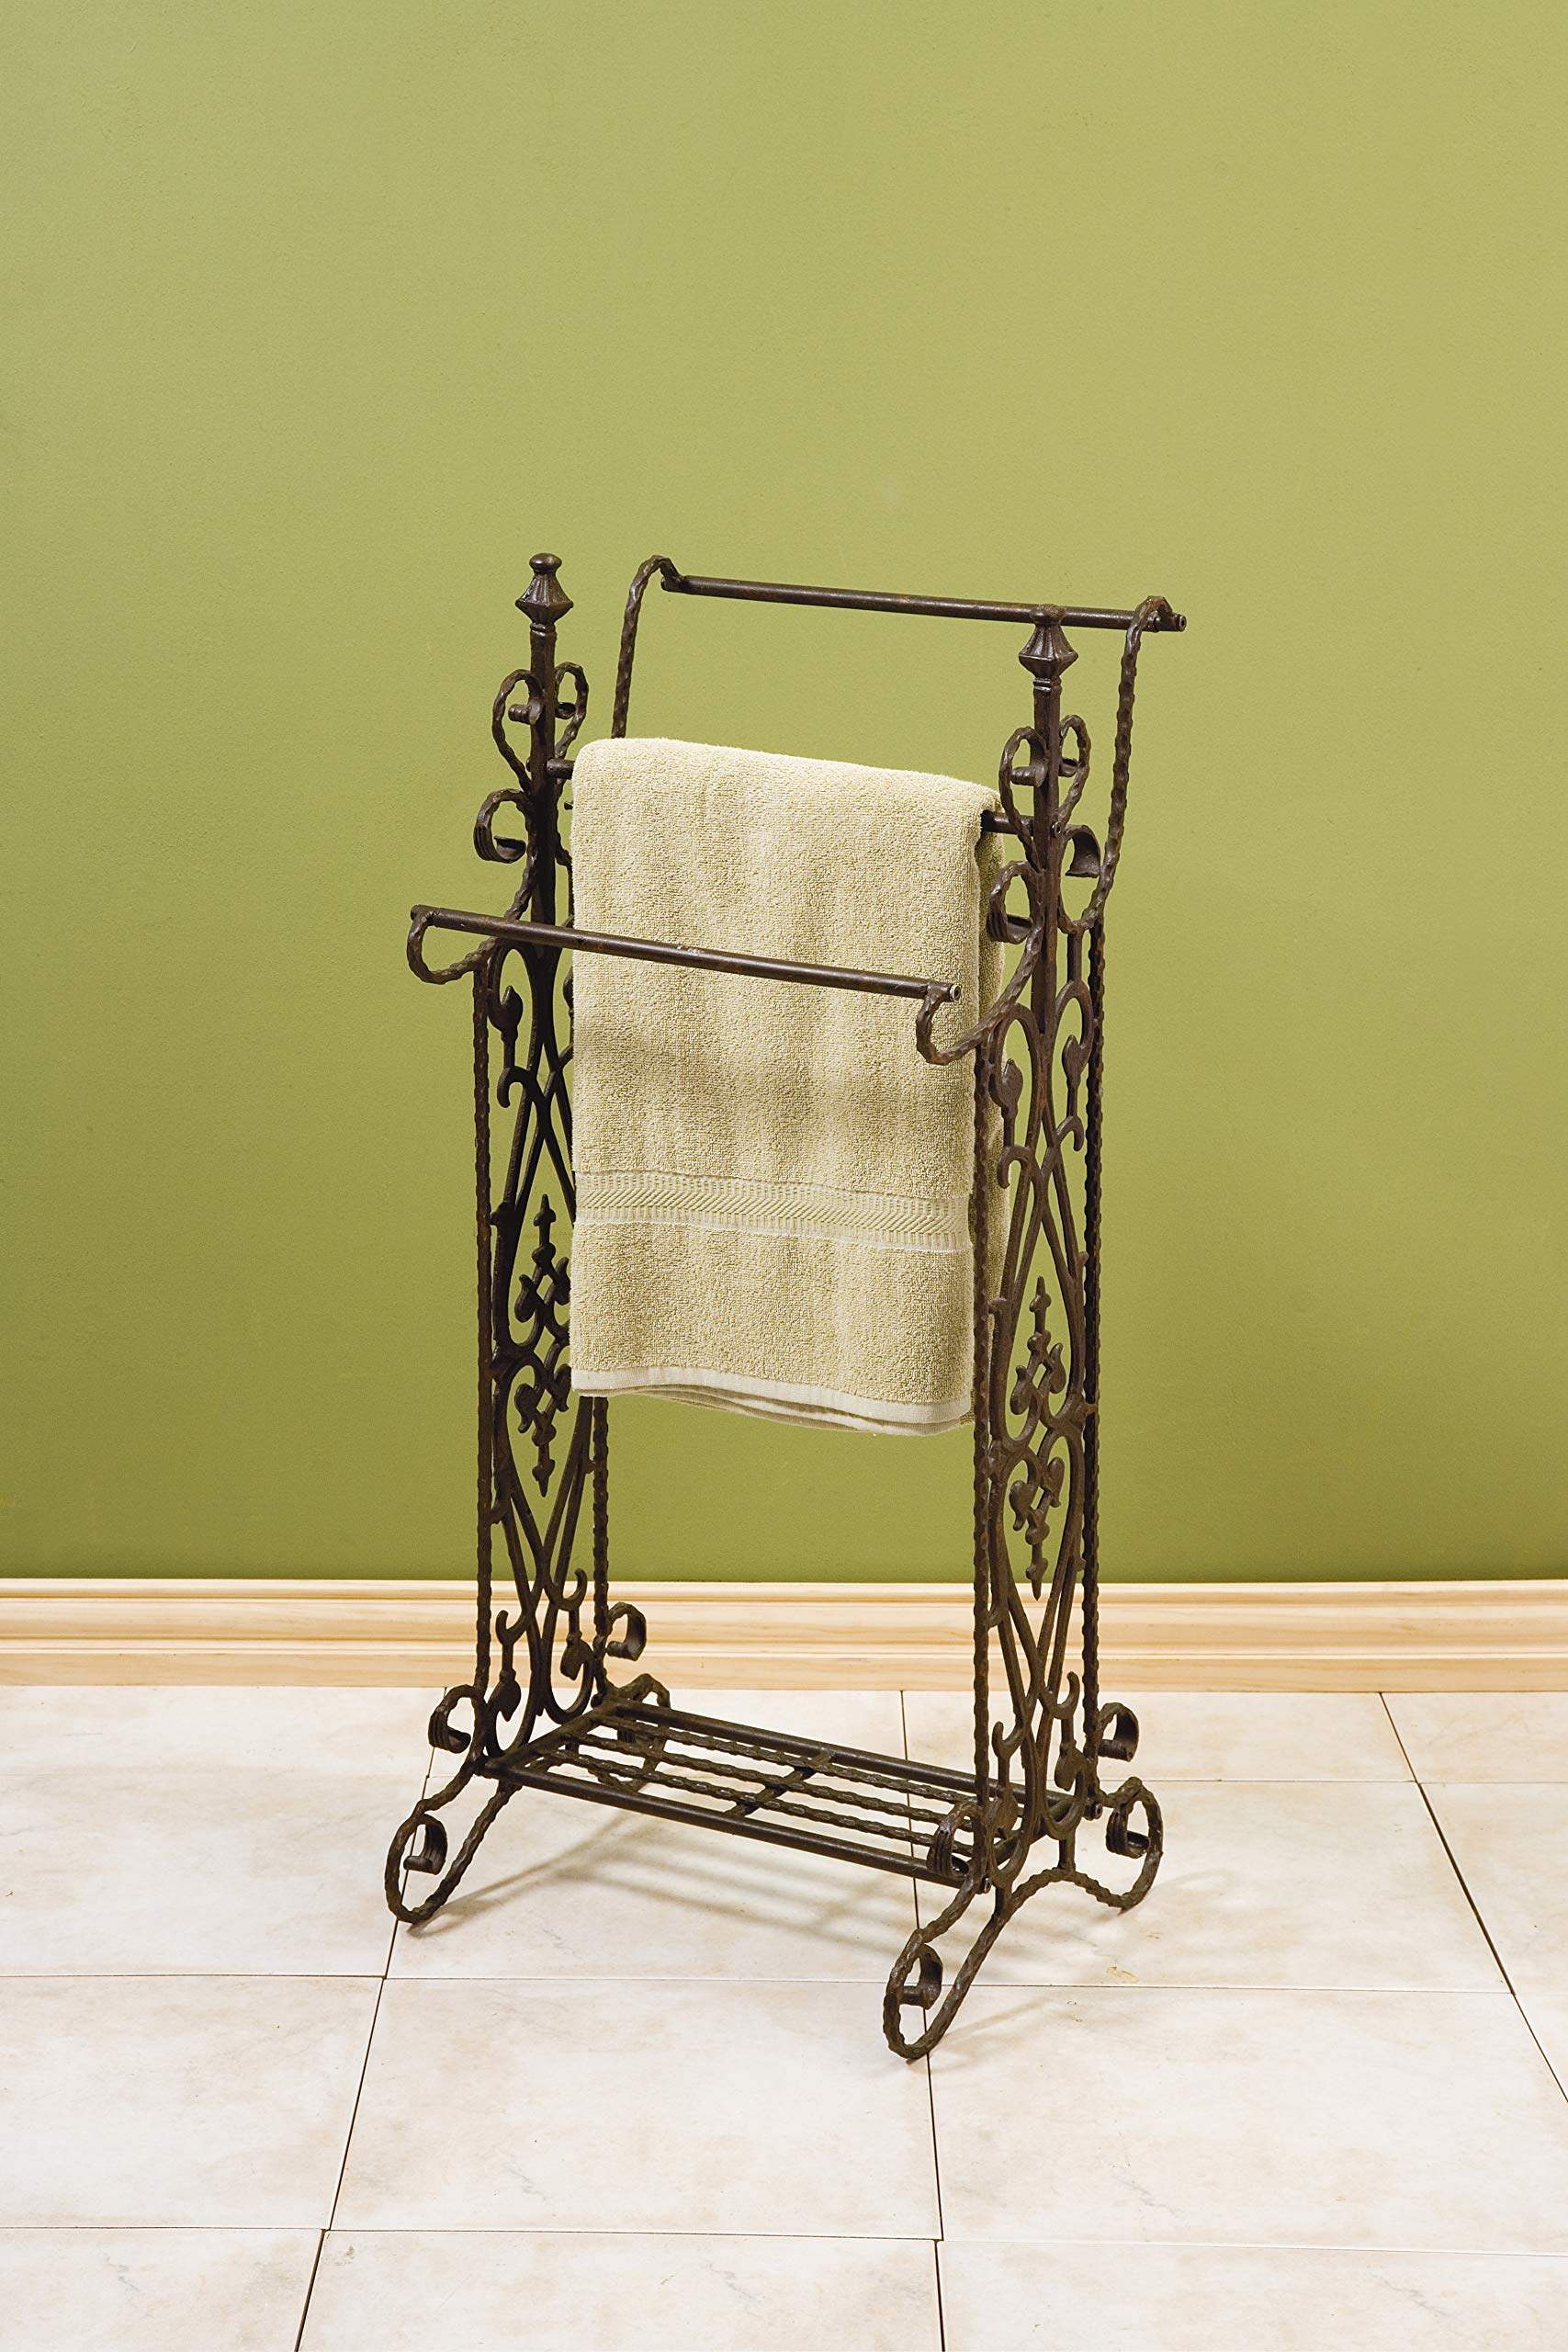 IMAX 7781 Narrow Quilt Rack - Three Bar Wrought Iron Stand, Floor Display Stand for Living Room, Bathroom, Compact Towel Rail. Home Decor Accessories